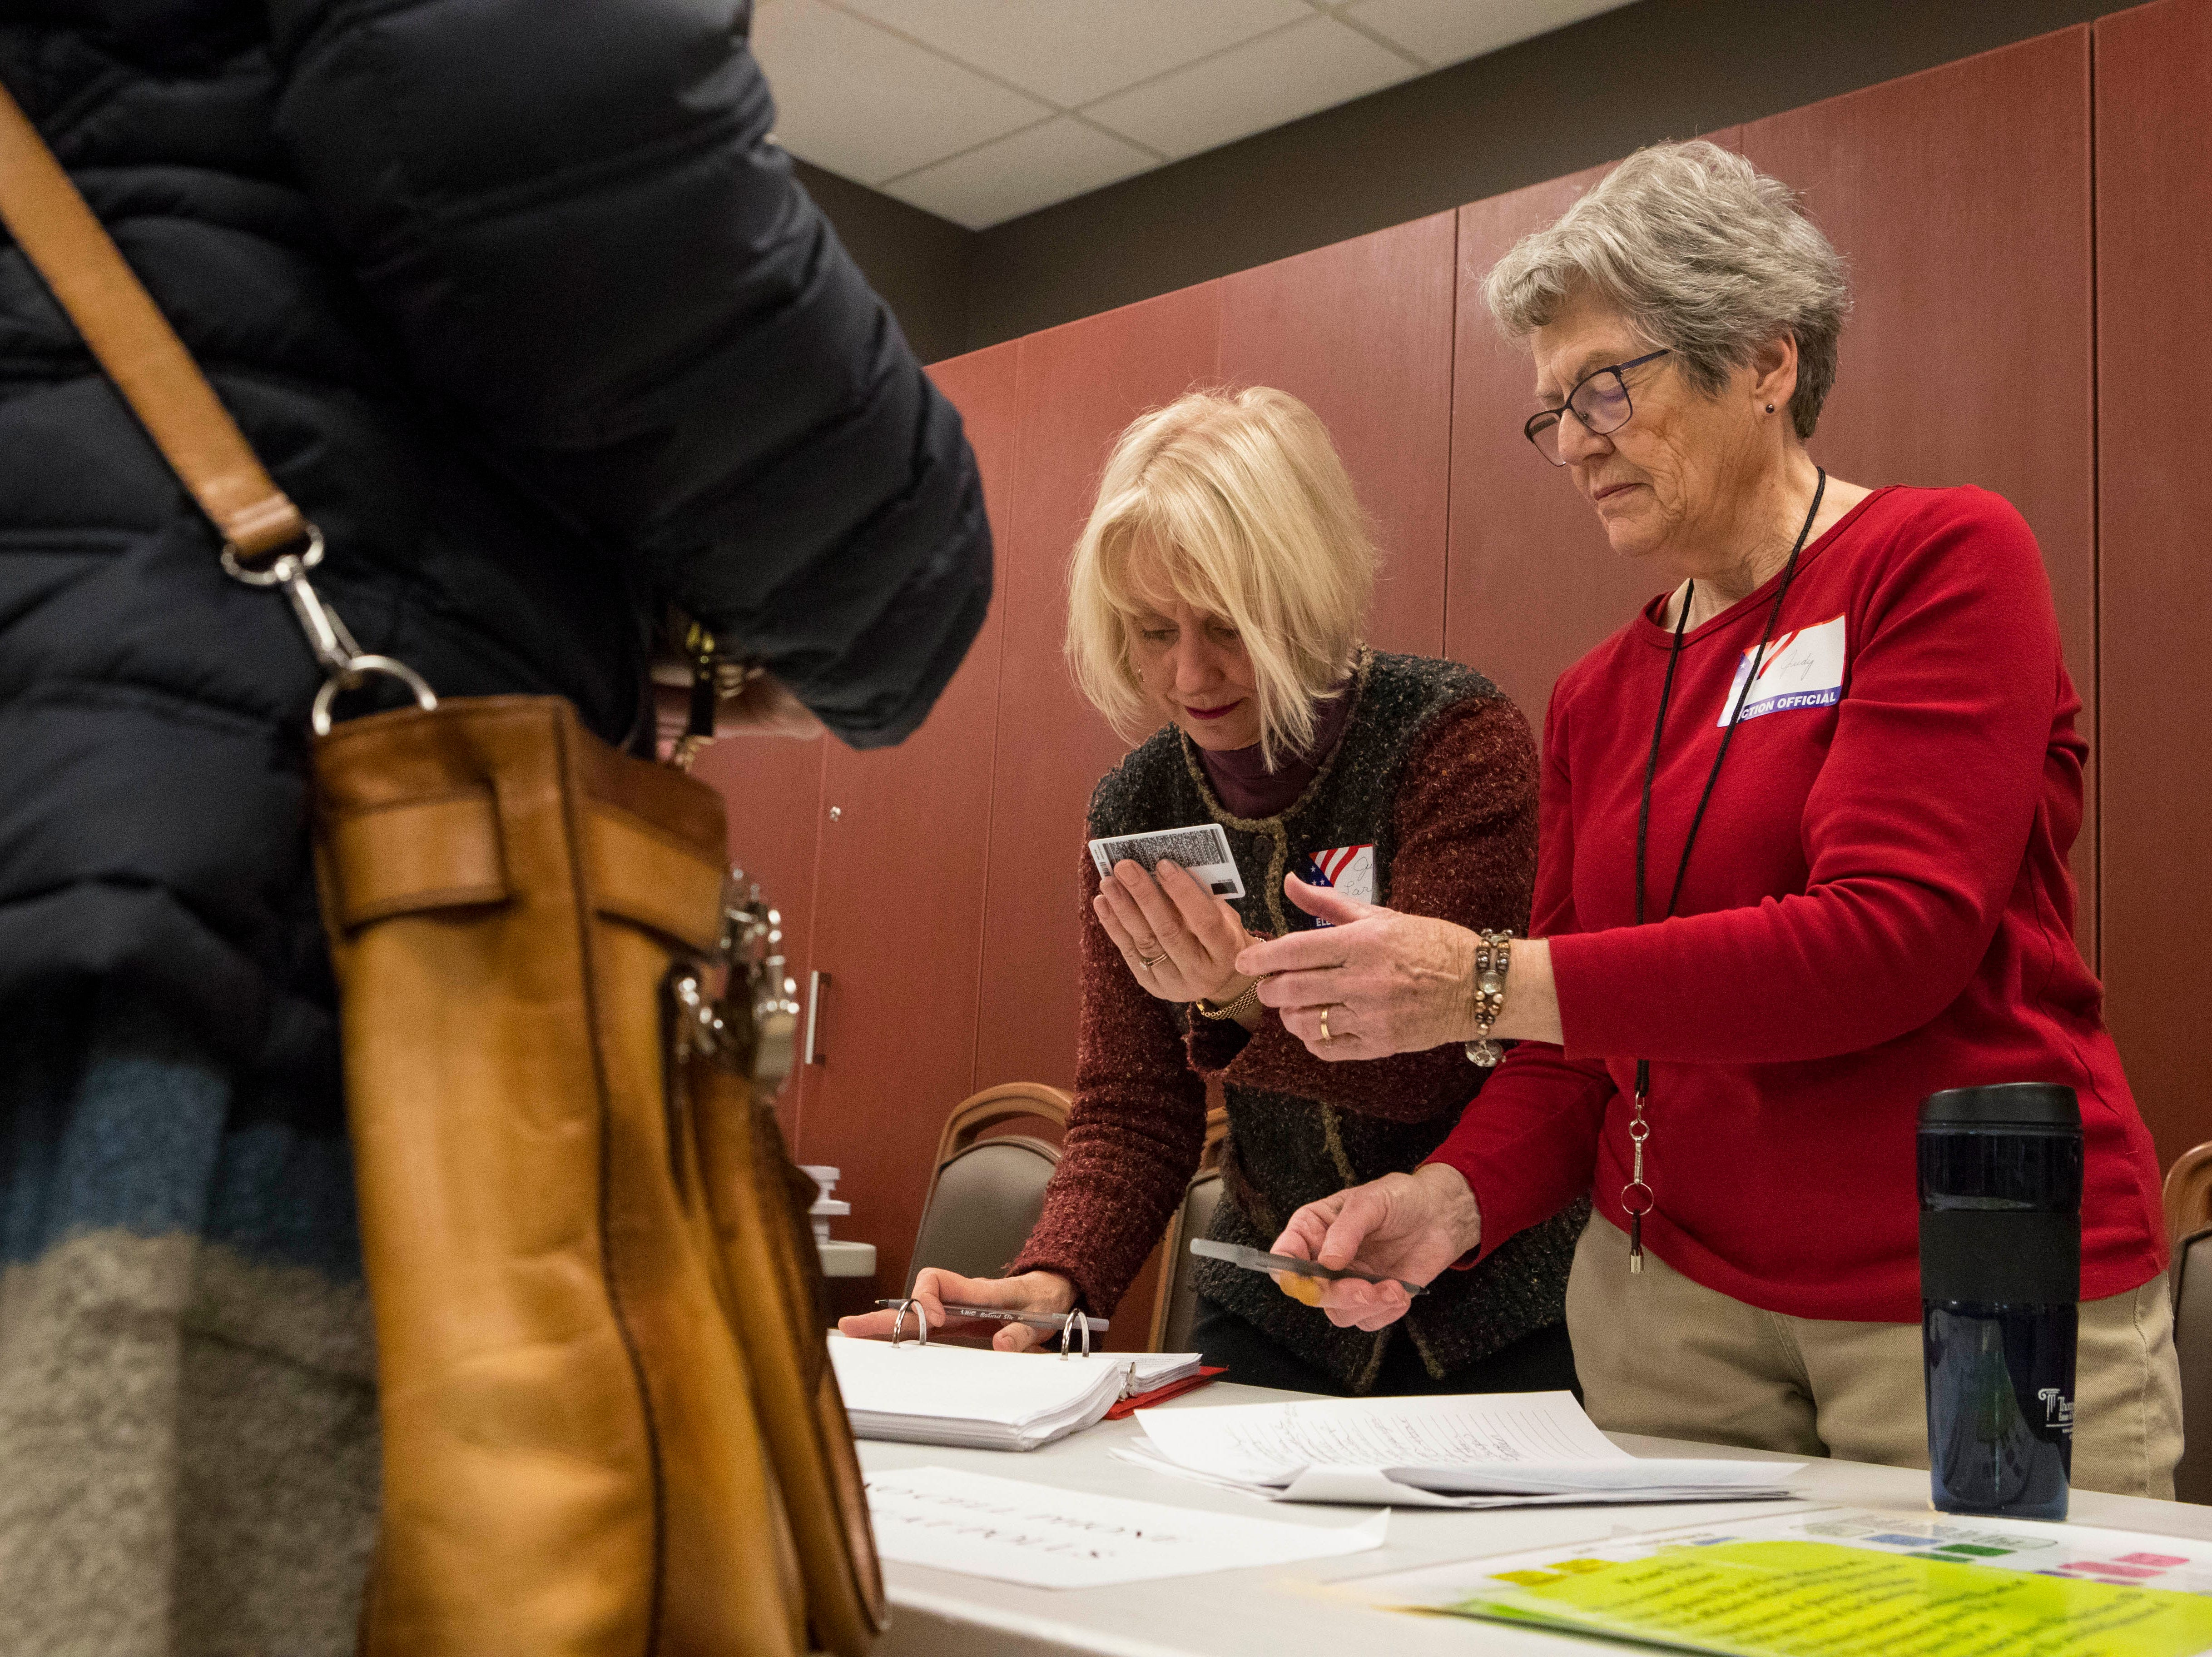 Judy Martin (right) and Julie Larson check in voters at Avera Prince of Peace Retirement Community in Sioux Falls, S.D., Tuesday, Nov. 6, 2018.